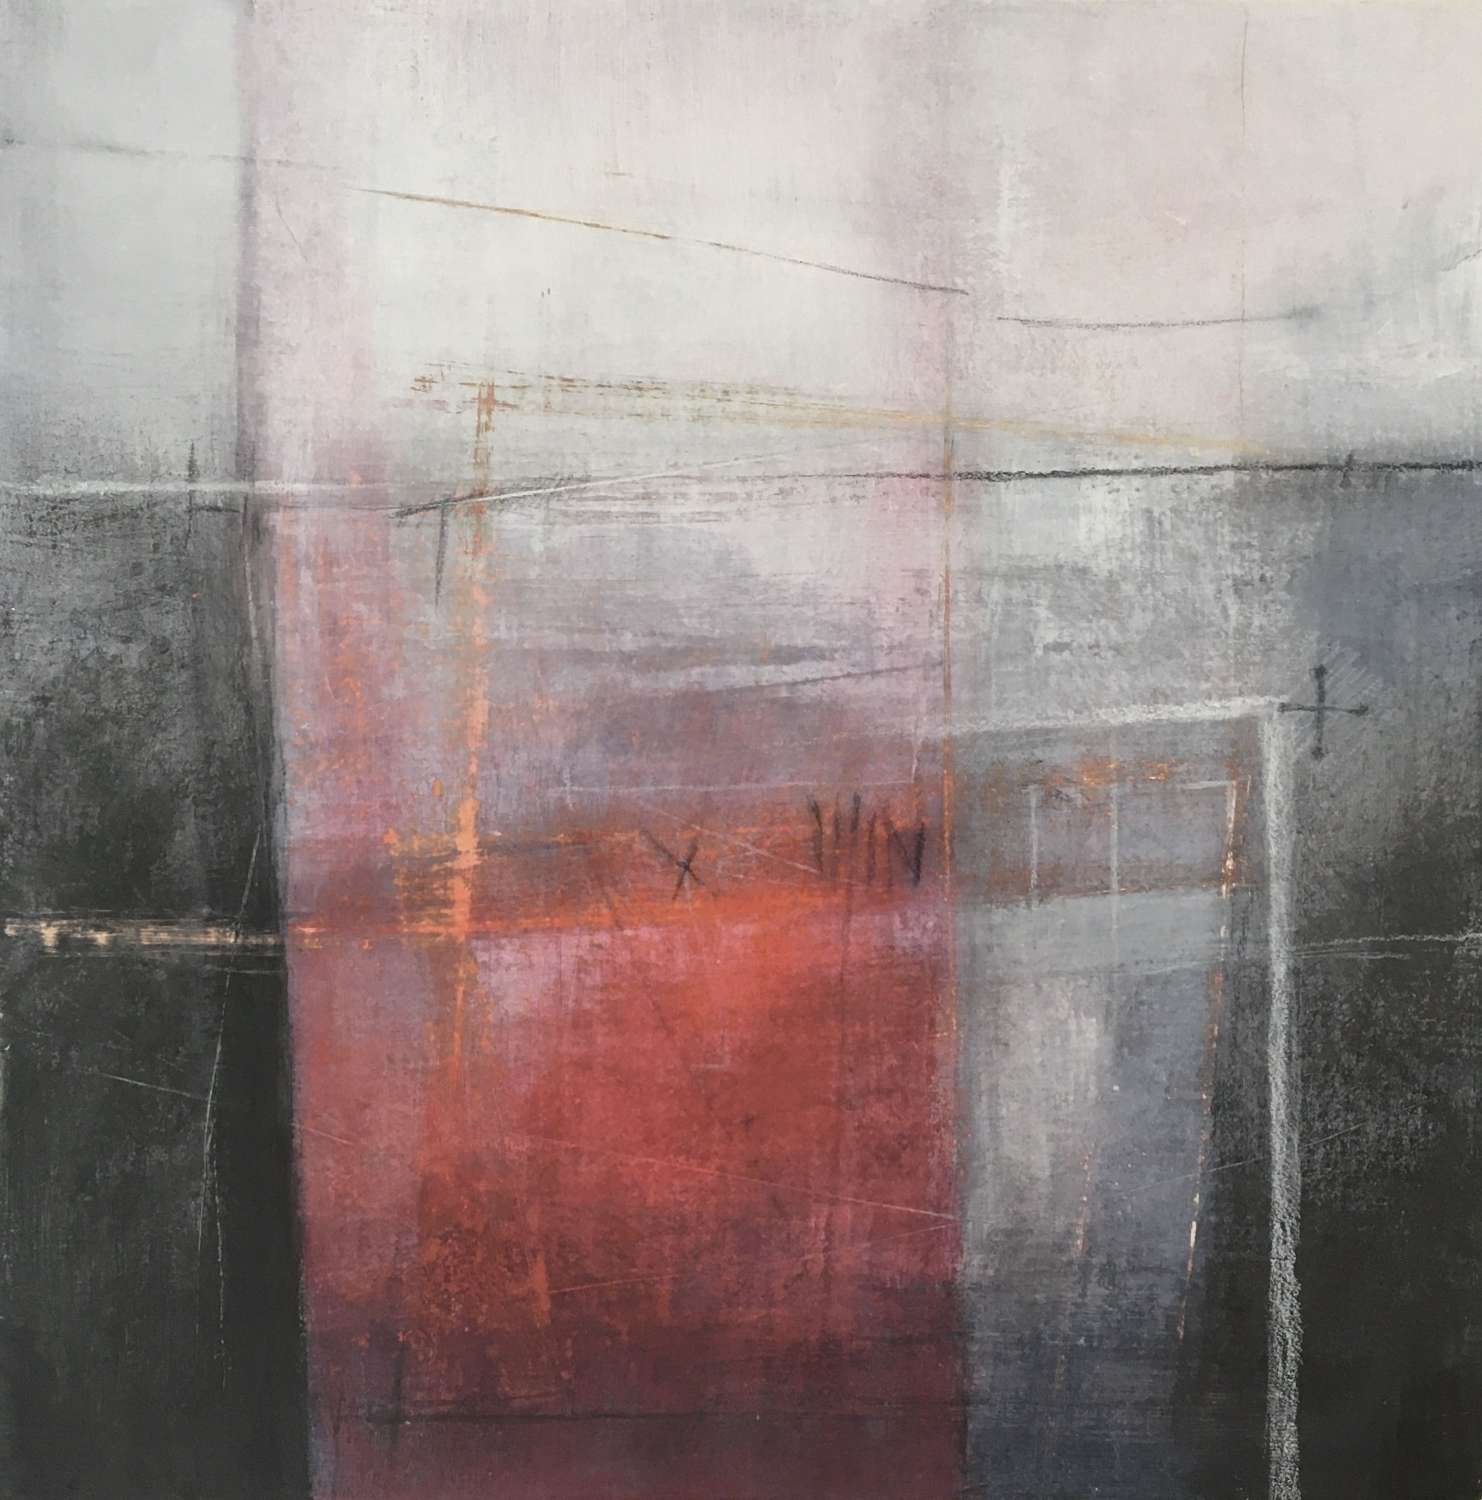 Michele Griffiths. Impossible Number.